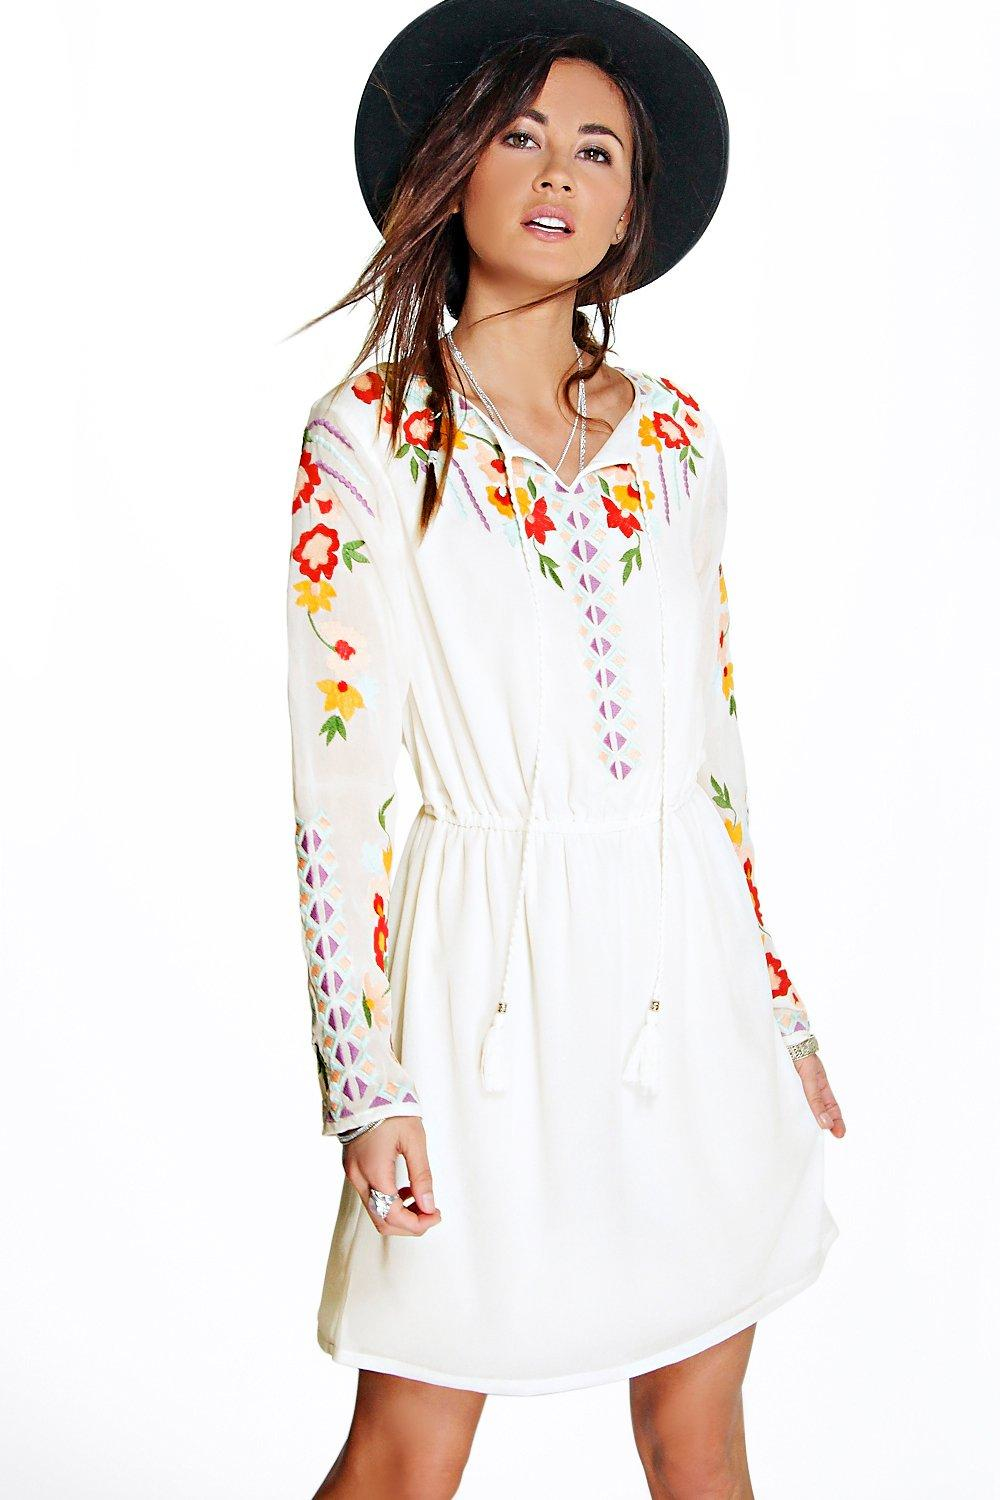 Boohoo boutique anya embroidered smock dress in white lyst